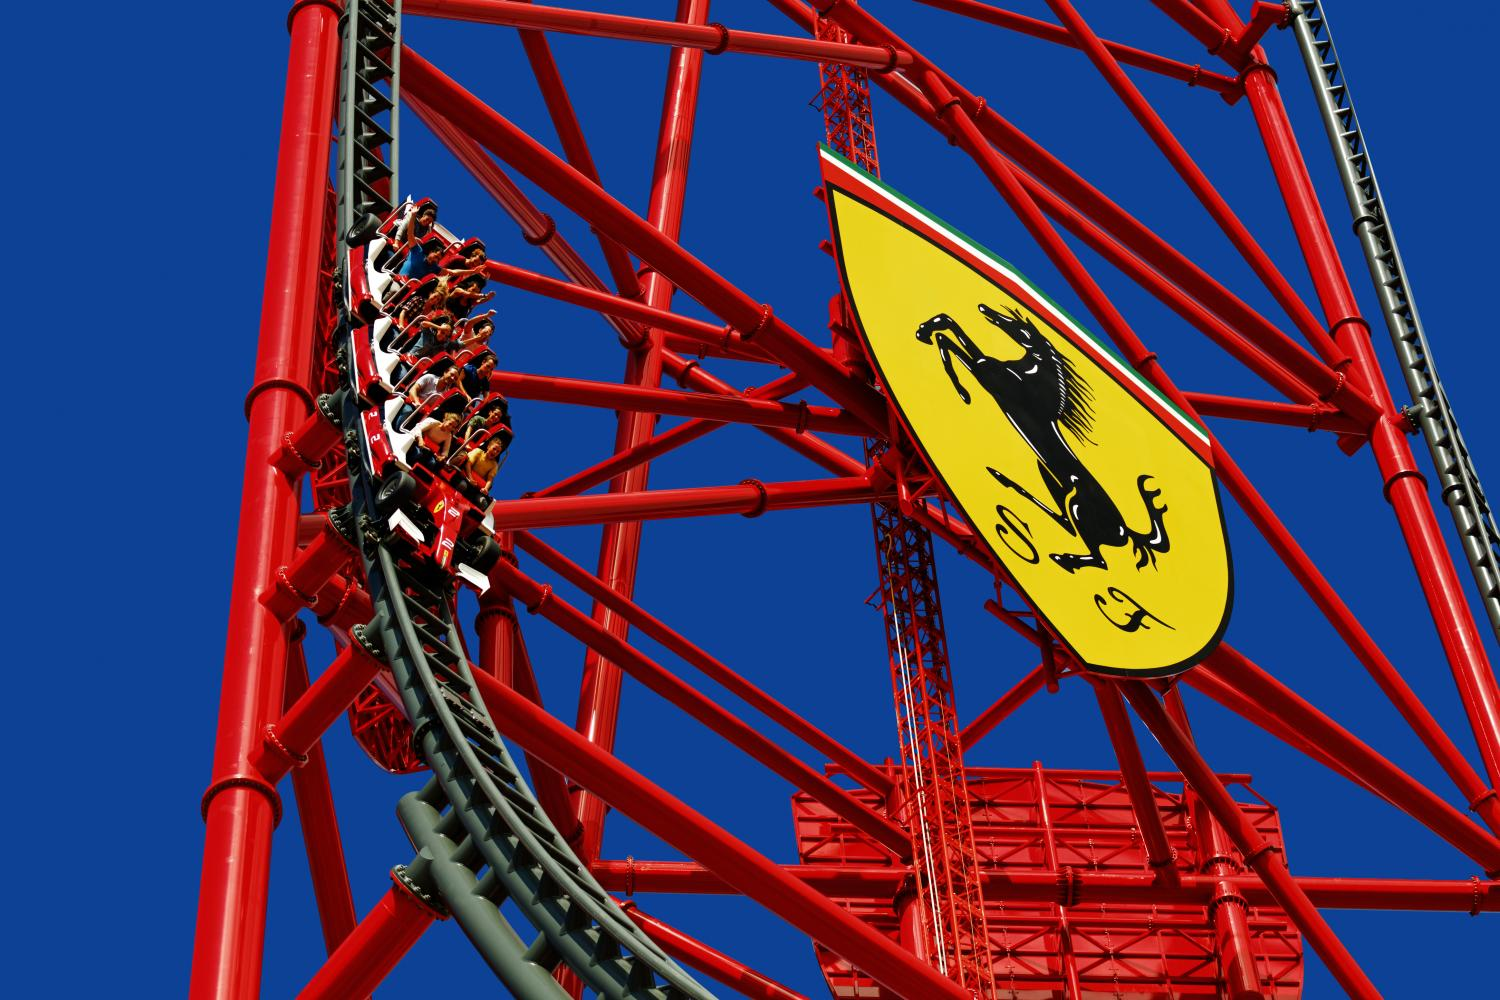 One Day Trip To Portaventura And Ferrari Land From Barcelona